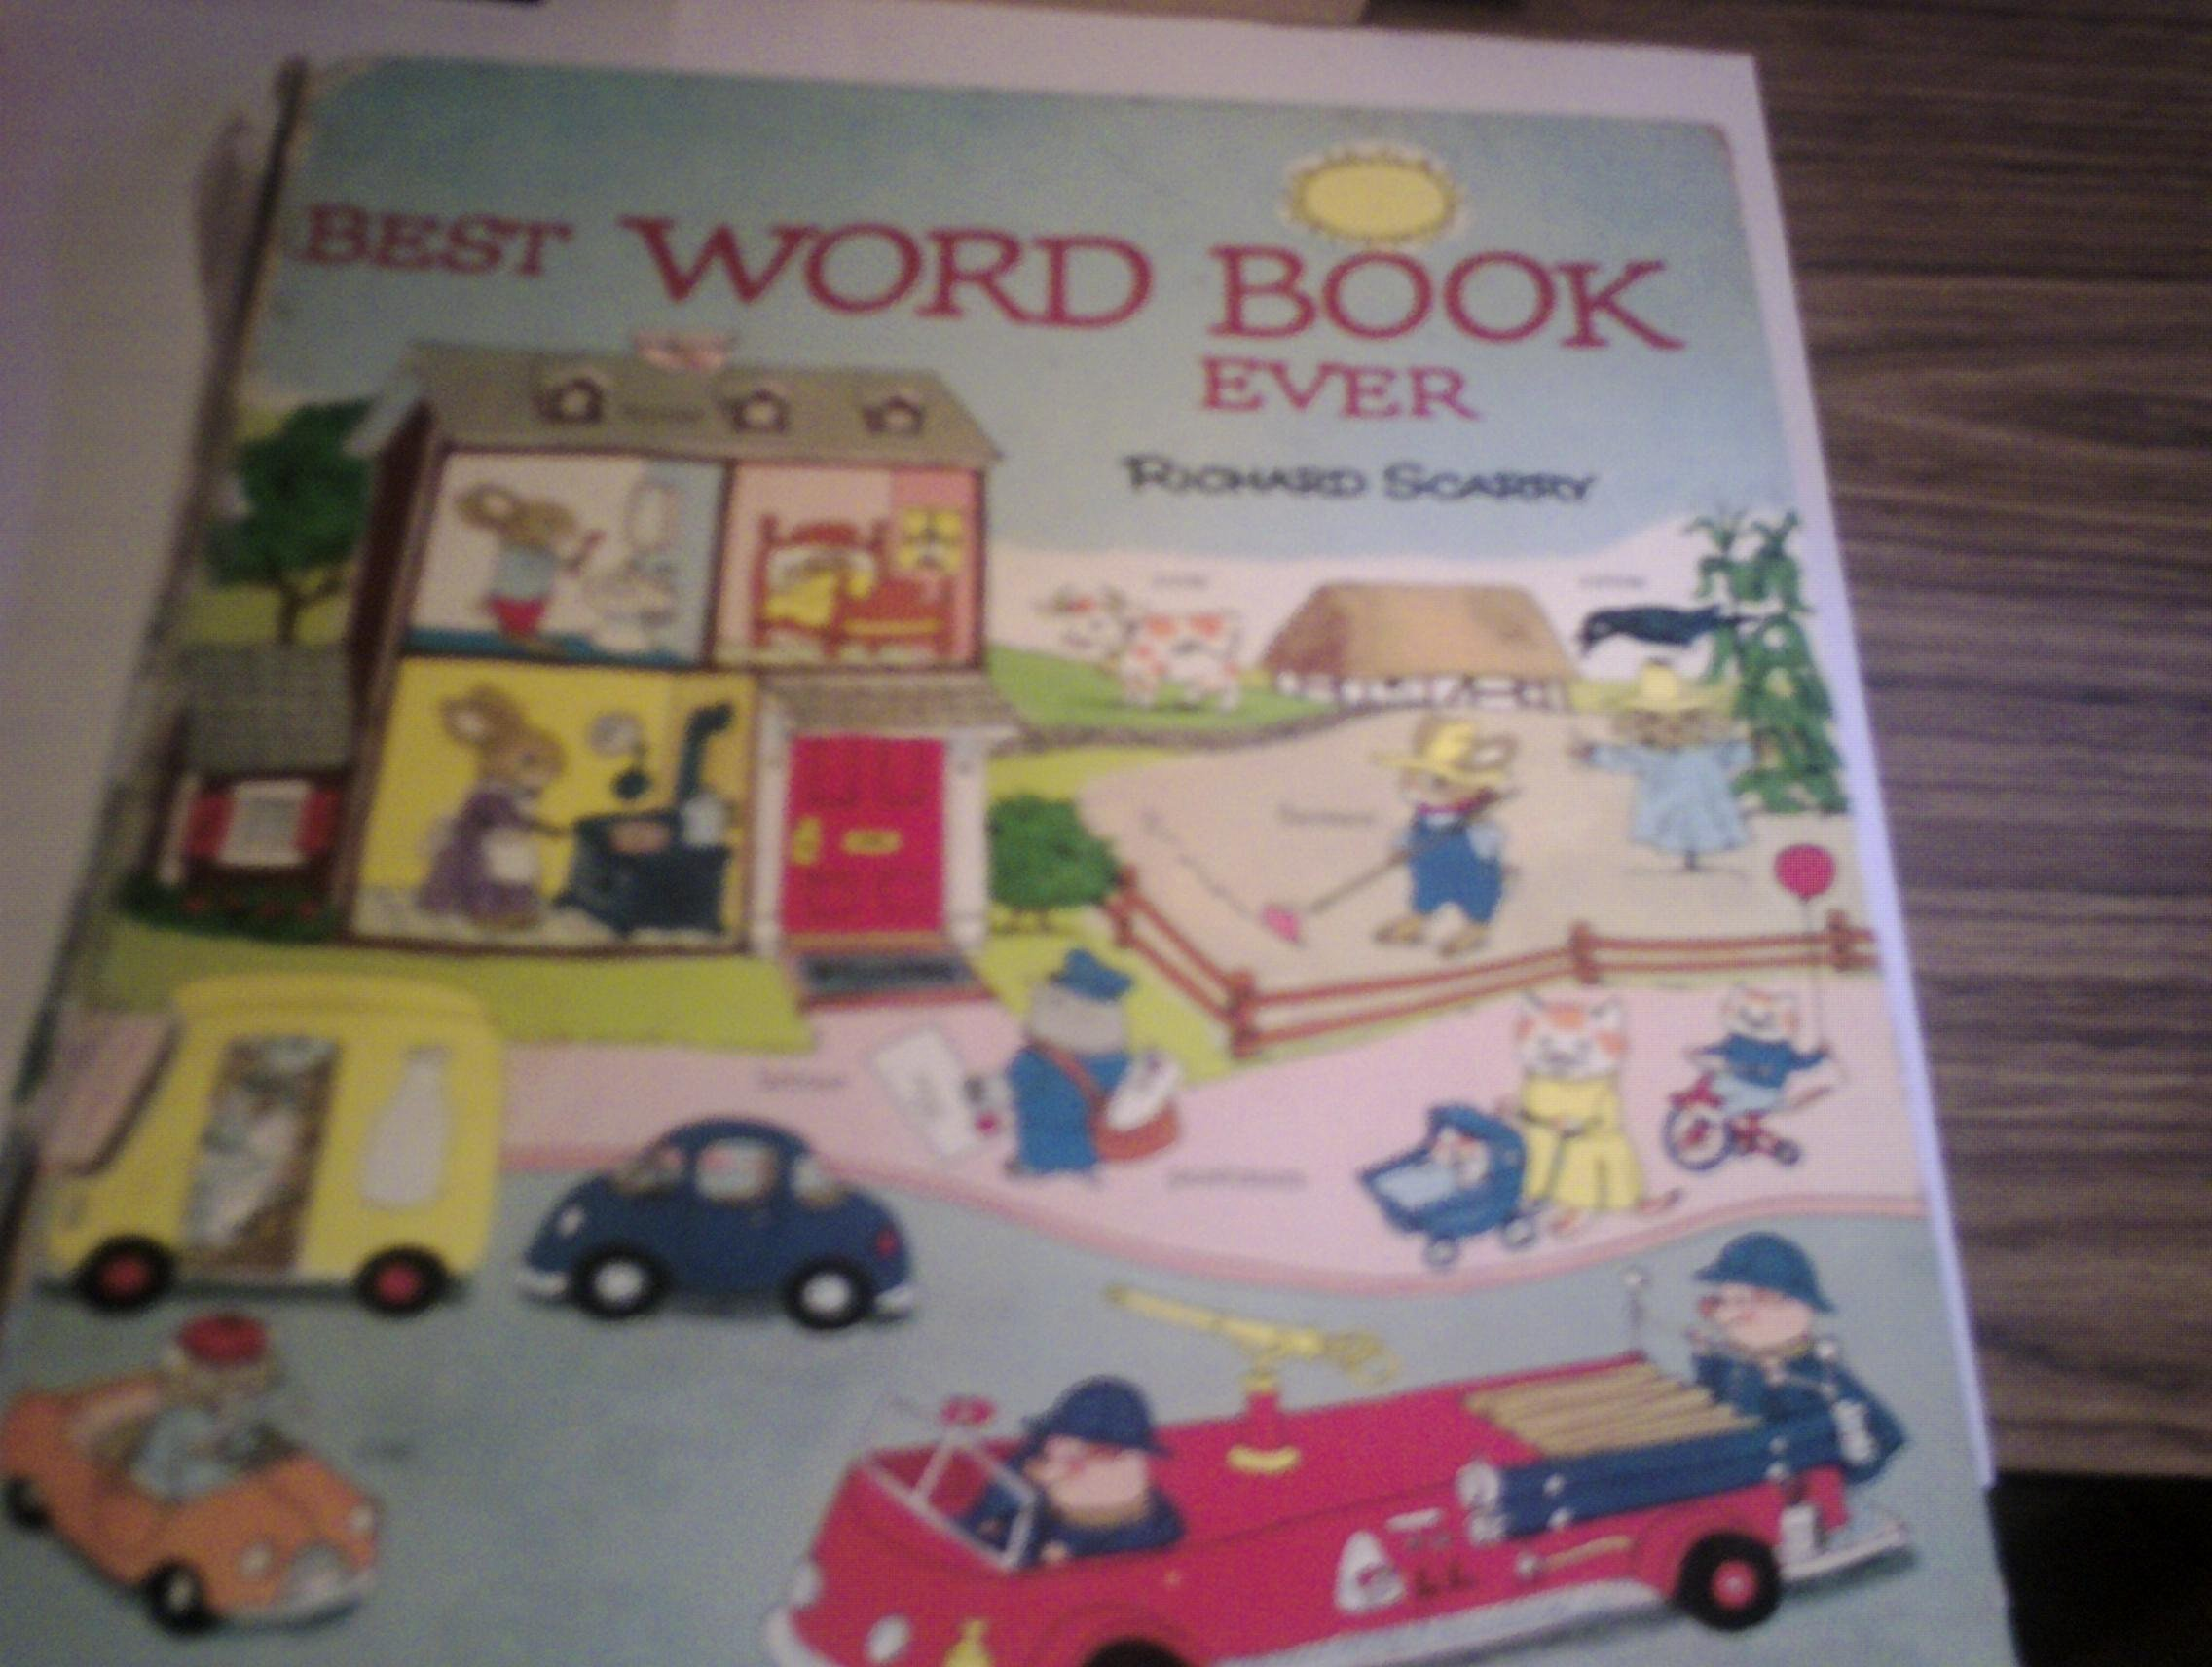 Richard Scarrys Best Word Book product image